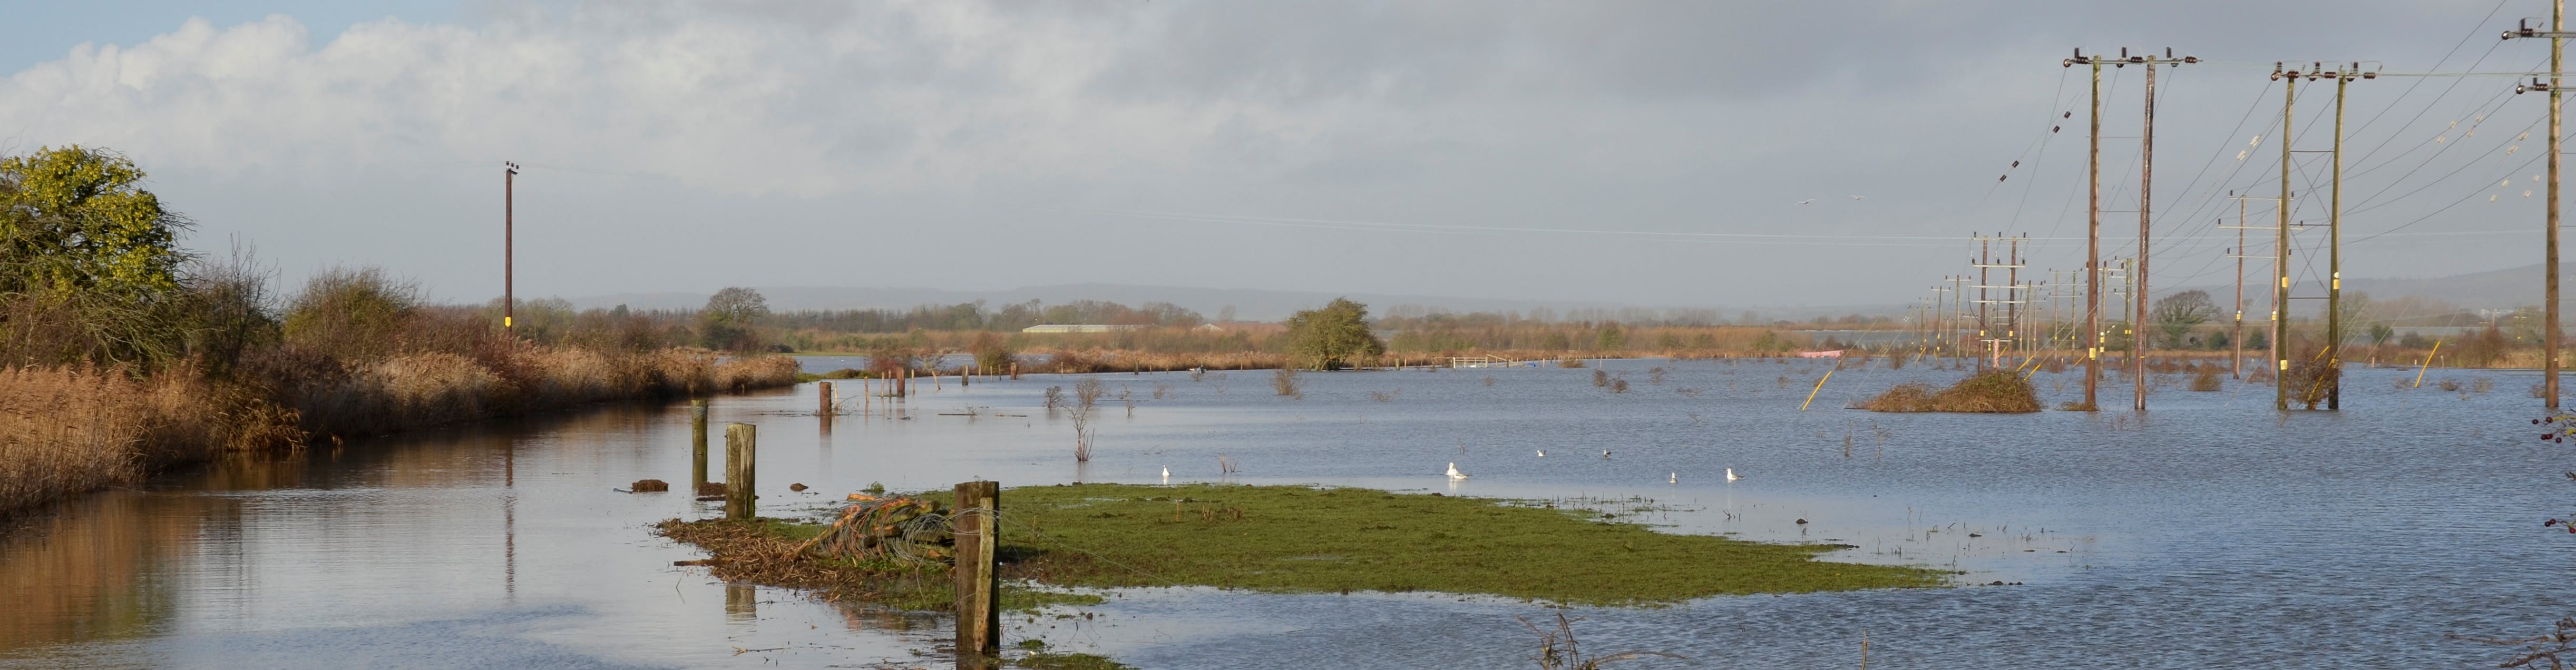 Image of flooding fields in Northern Bognor